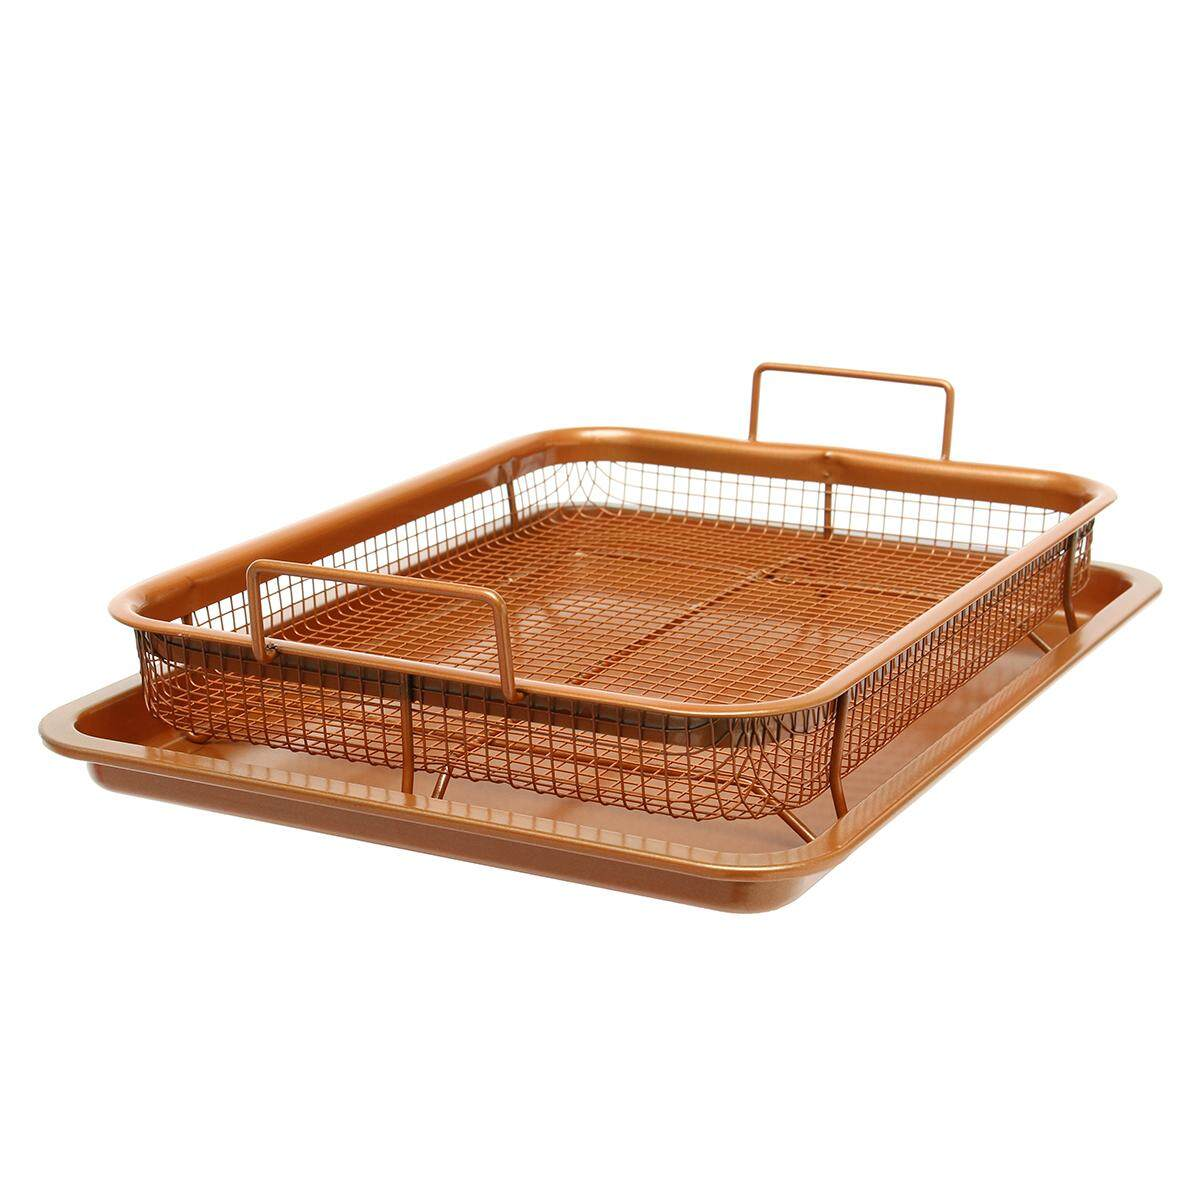 Bacon Bonanza By Gotham Steel Oven Healthier Bacon Drip Rack Tray With Pan - New - Intl By Freebang.